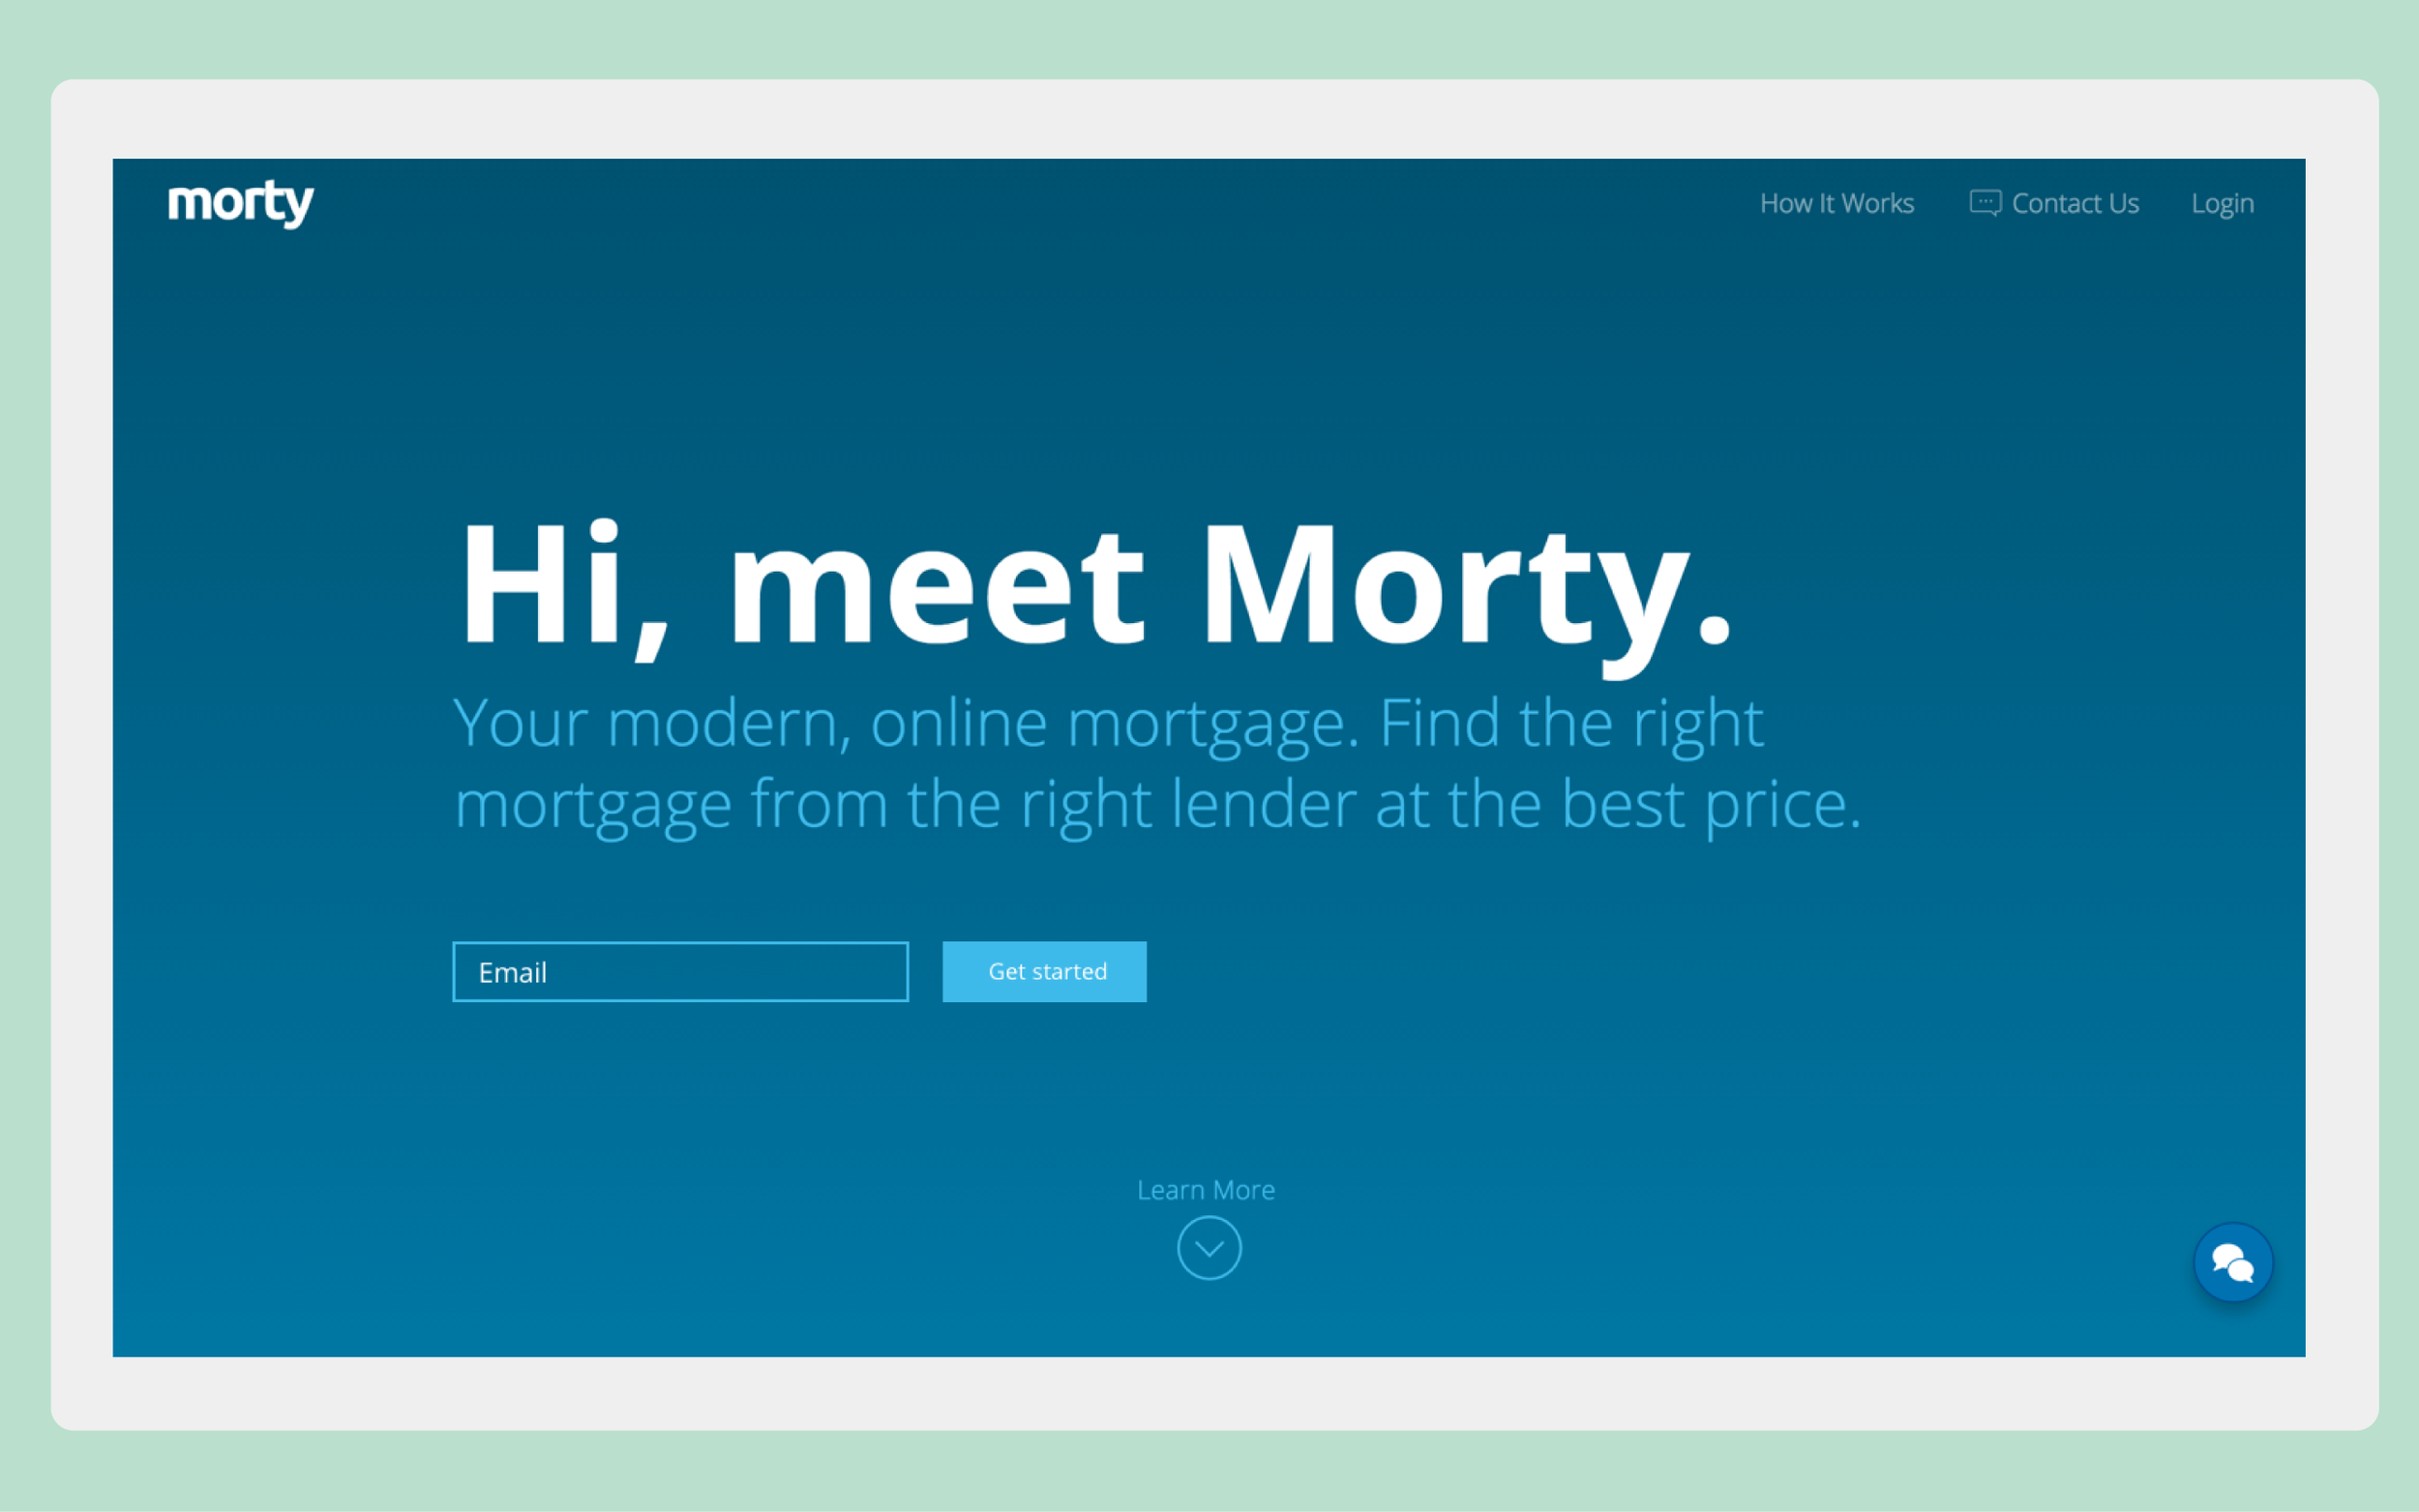 Morty's user onboarding flow